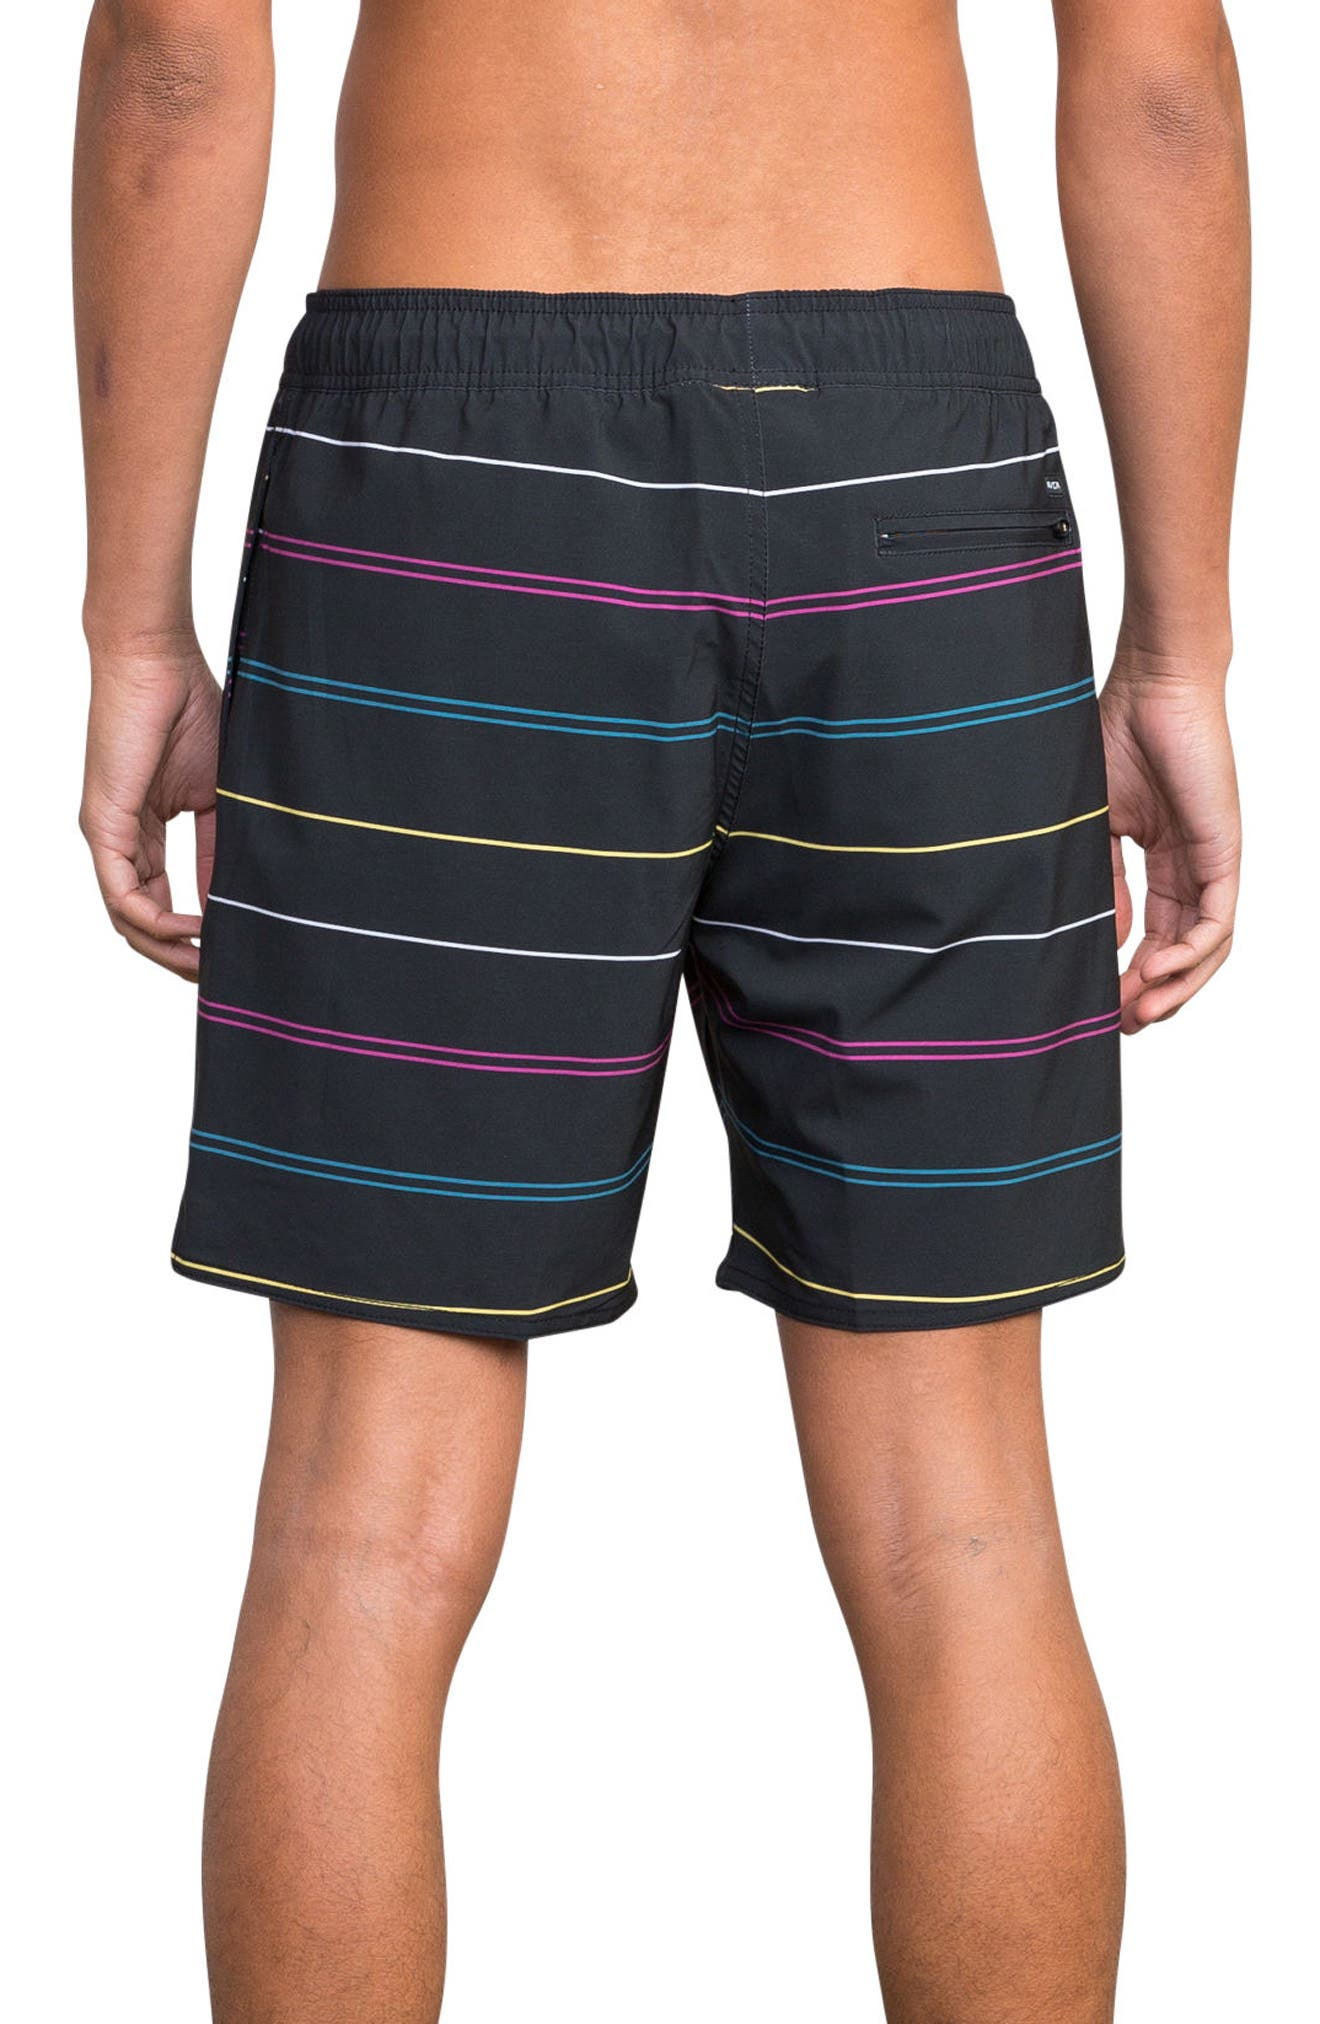 Middle Elastic Swim Trunks,                             Alternate thumbnail 2, color,                             008